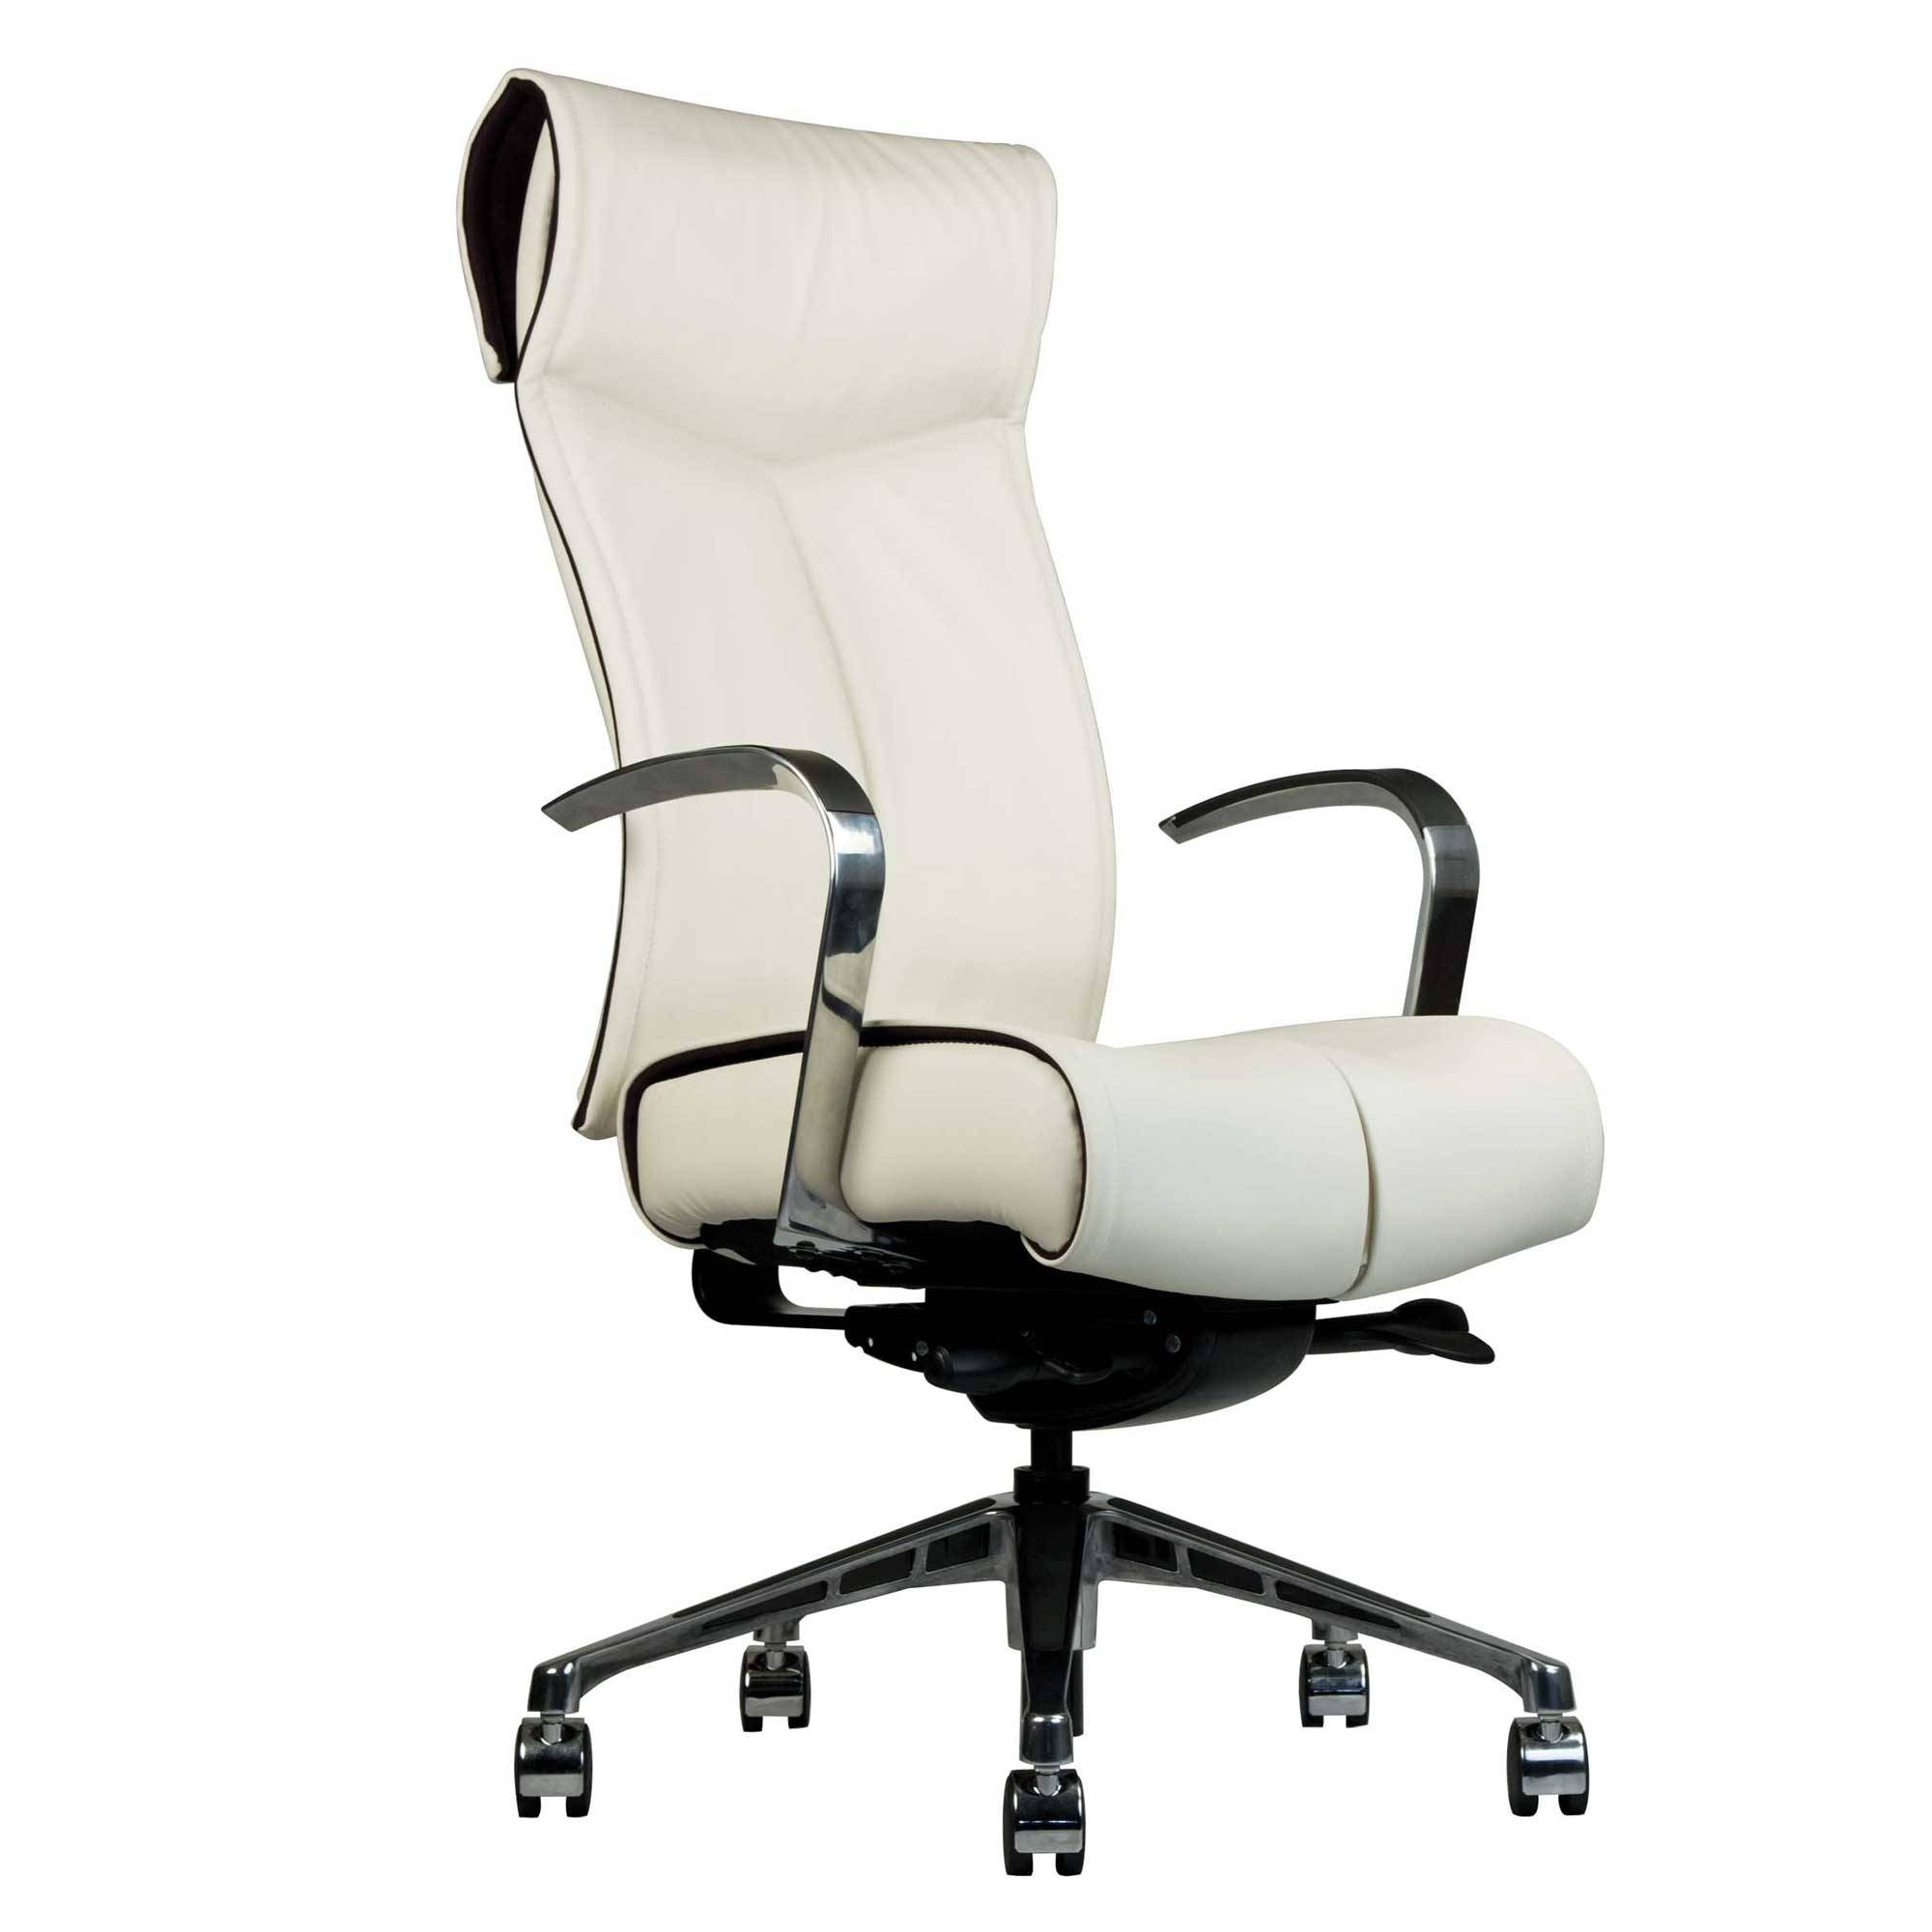 Sofa Modern Executive Office Chairs Leather | Winafrica for Sofa Desk Chairs (Image 9 of 15)